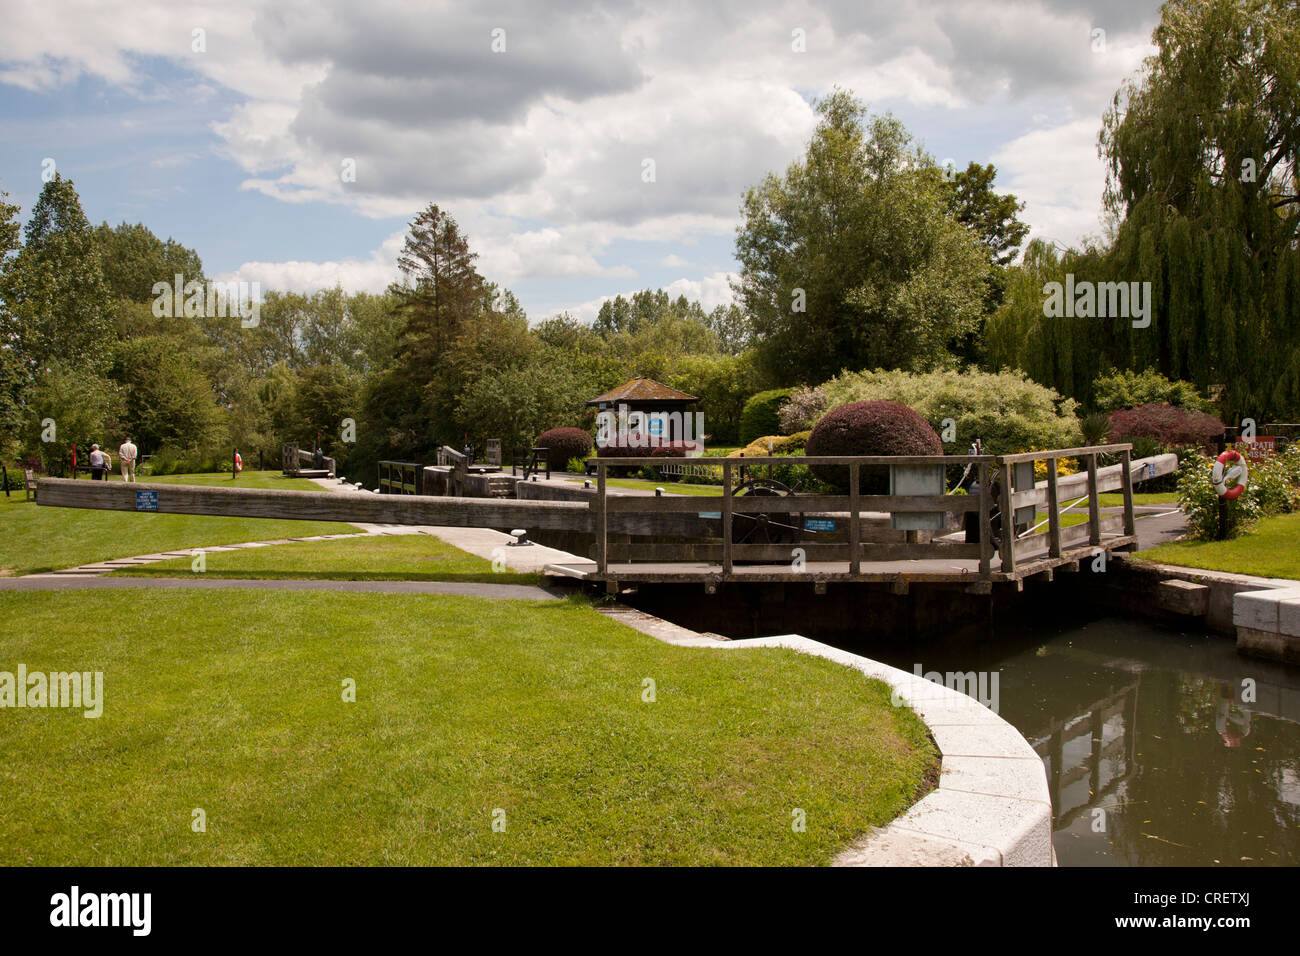 Buscot Lock on the River Thames, Oxfordshire, England. - Stock Image